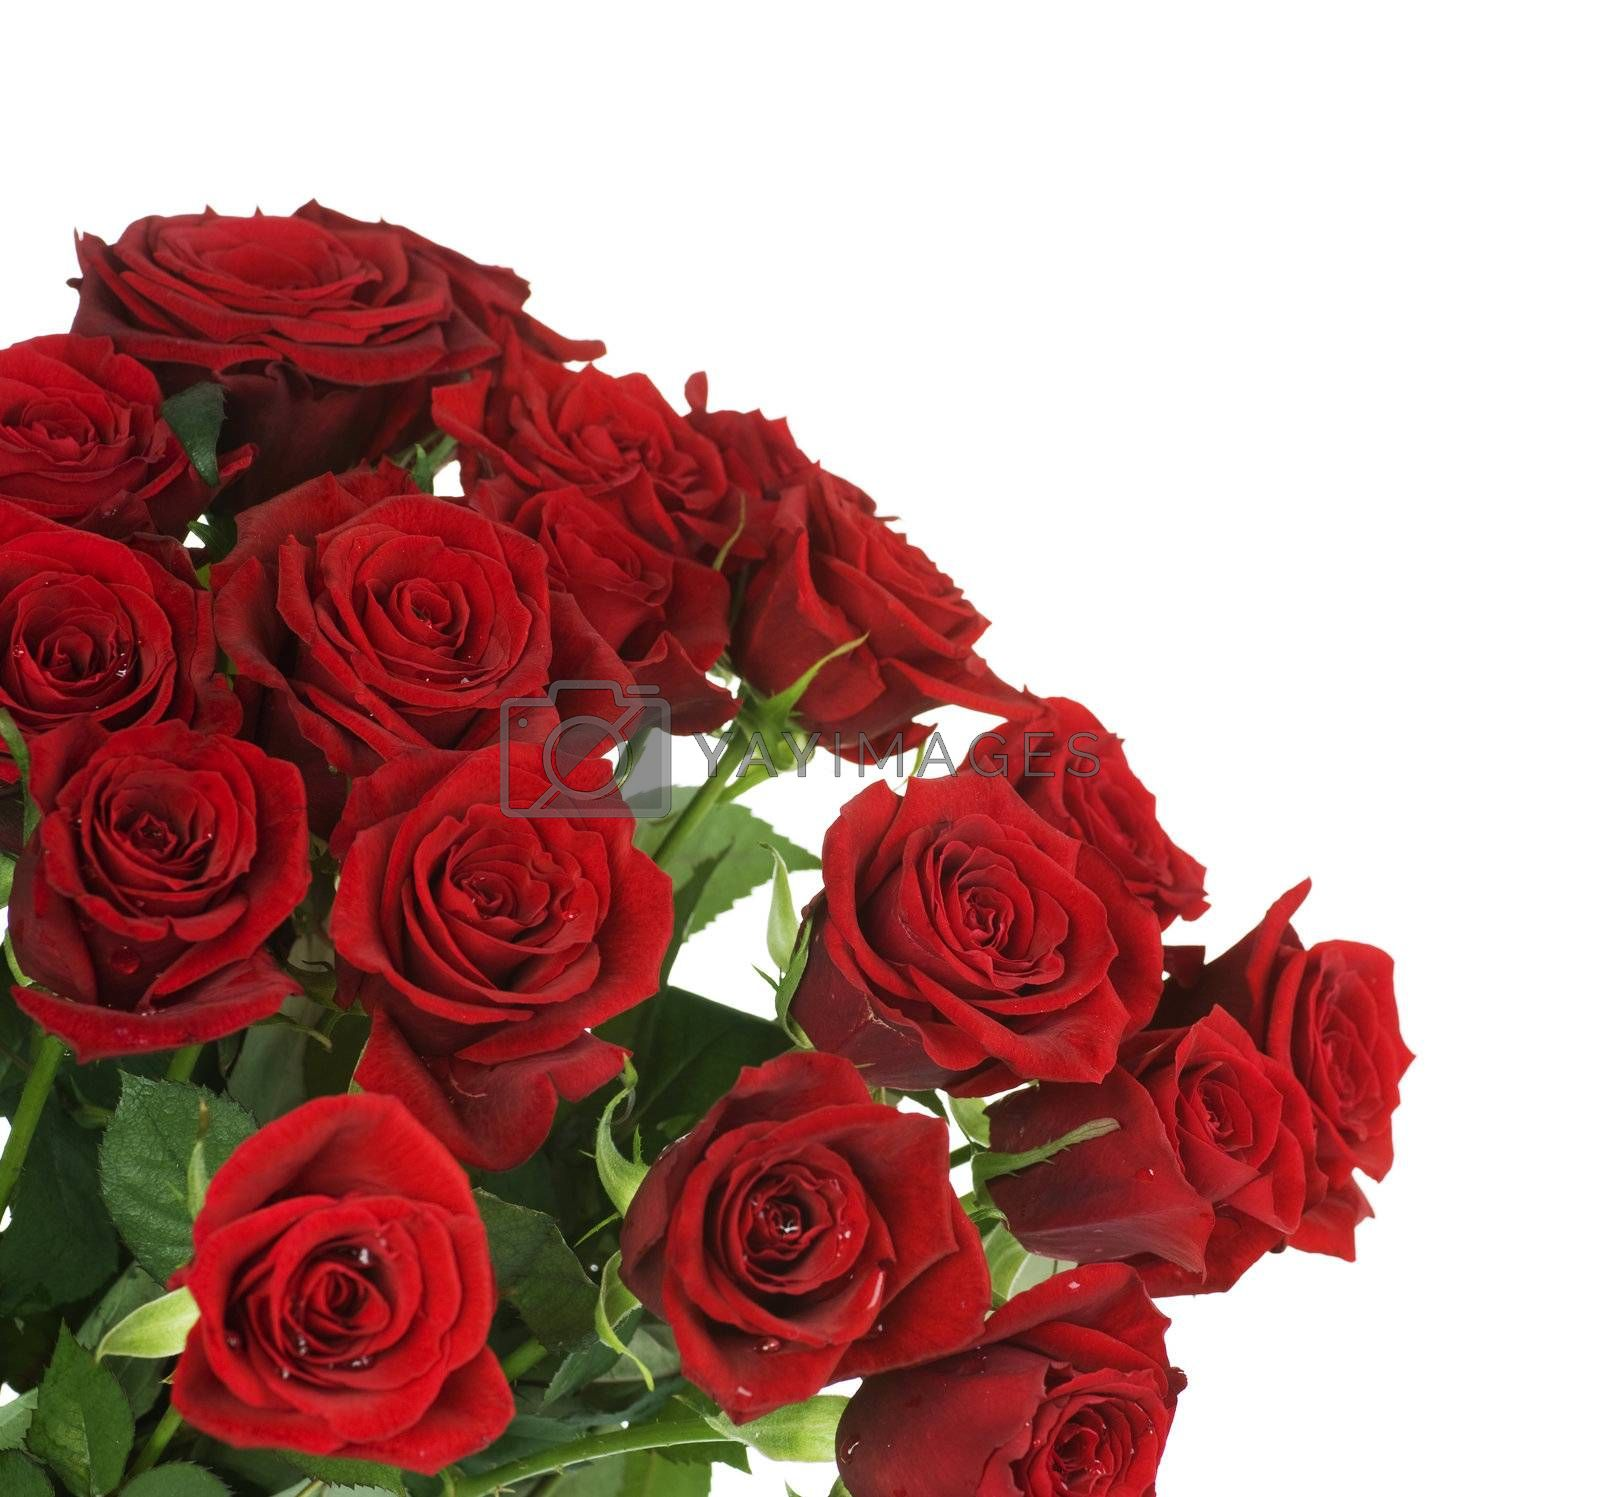 Big Red Roses Bouquet border by Subbotina Anna